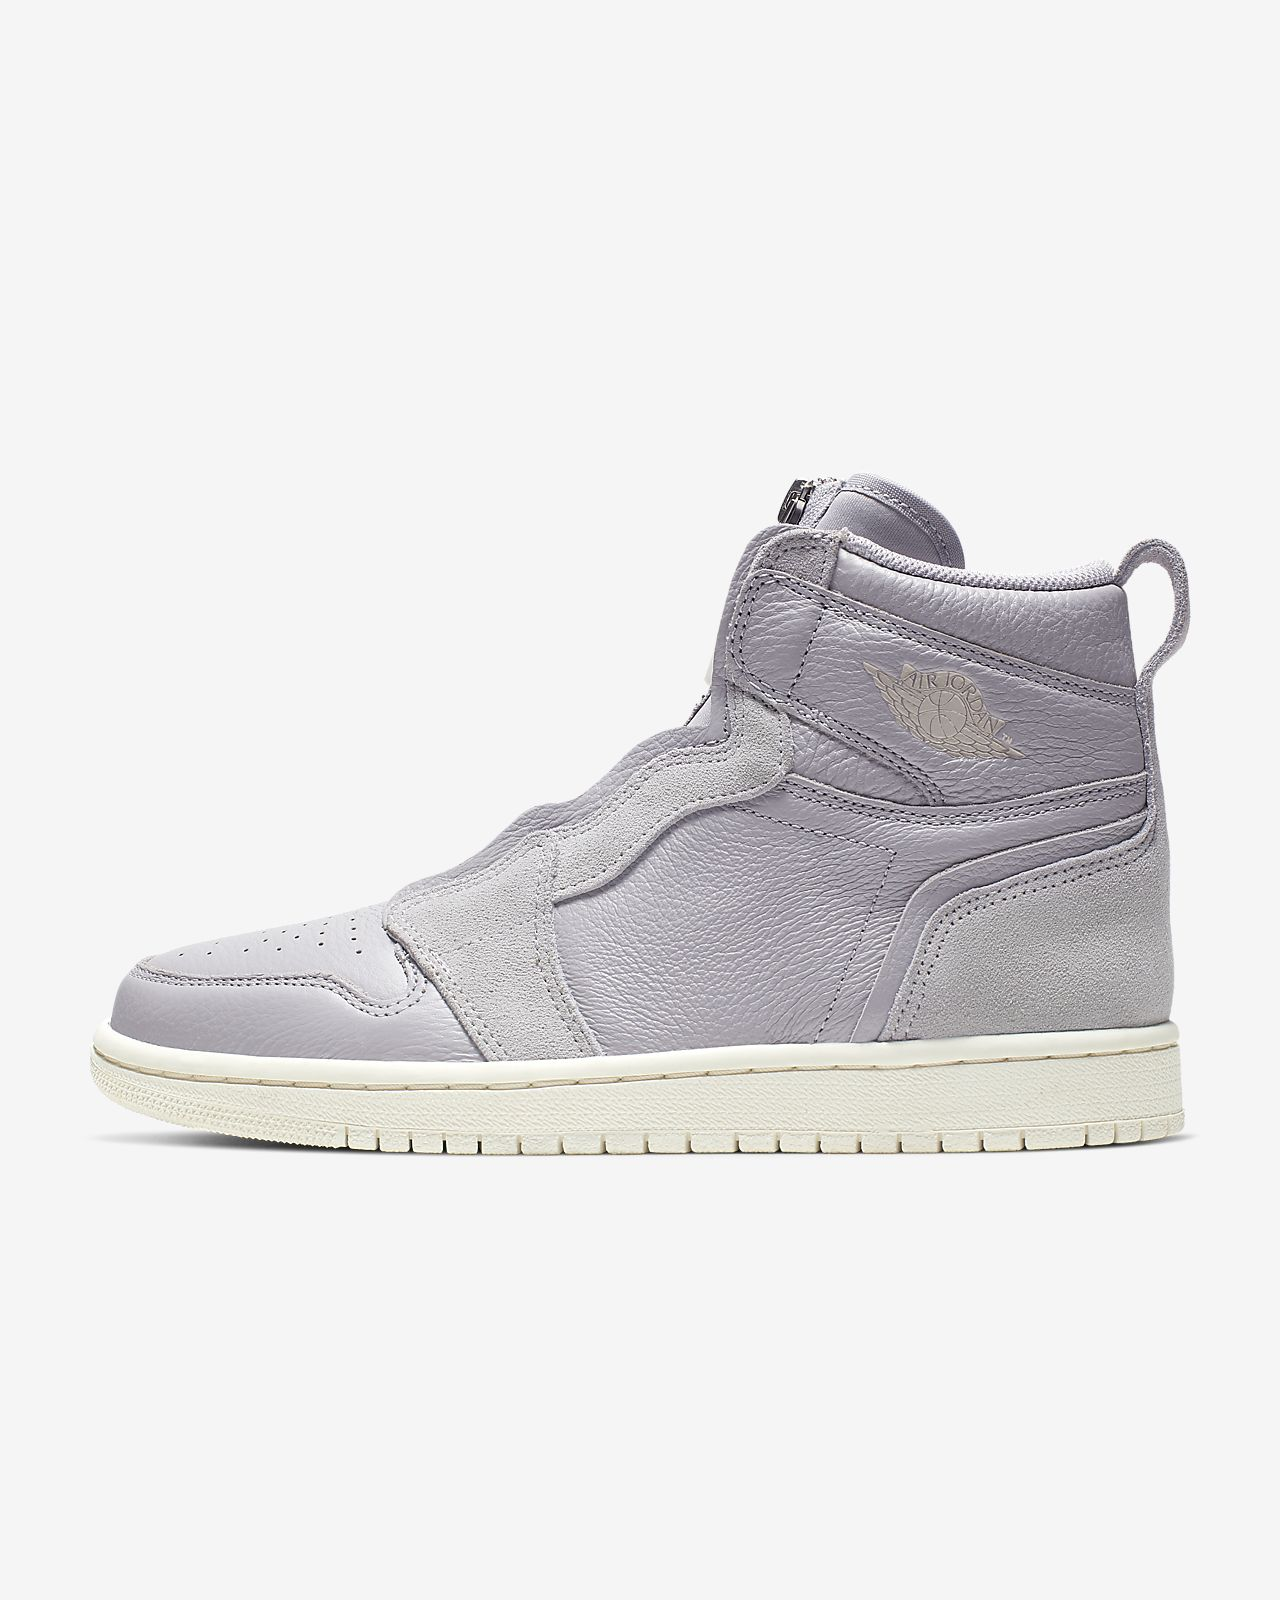 Air Jordan 1 High Zip 女子运动鞋